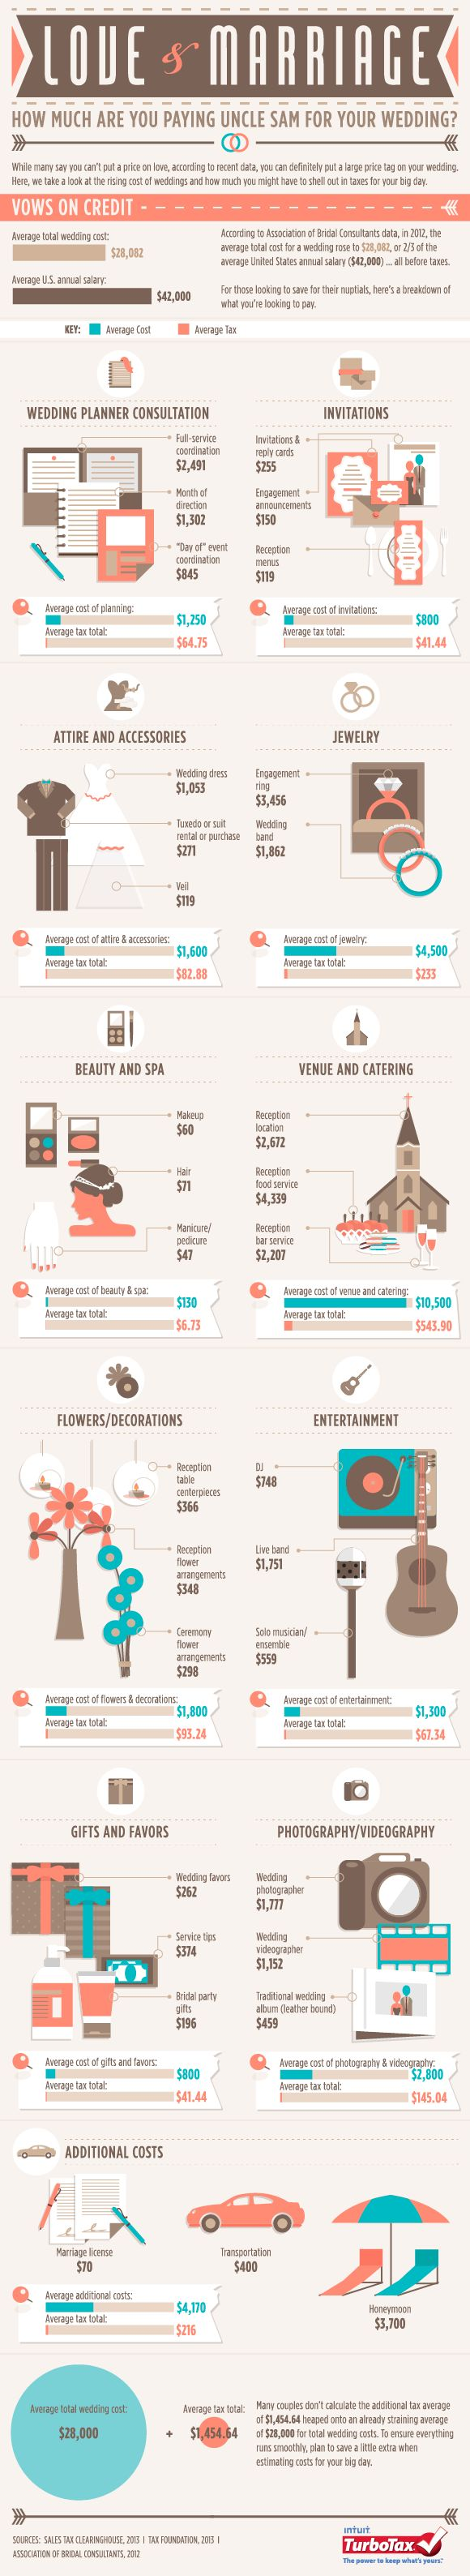 25 best wedding cost breakdown ideas on pinterest wedding planning guide wedding budget breakdown and wedding budget plans